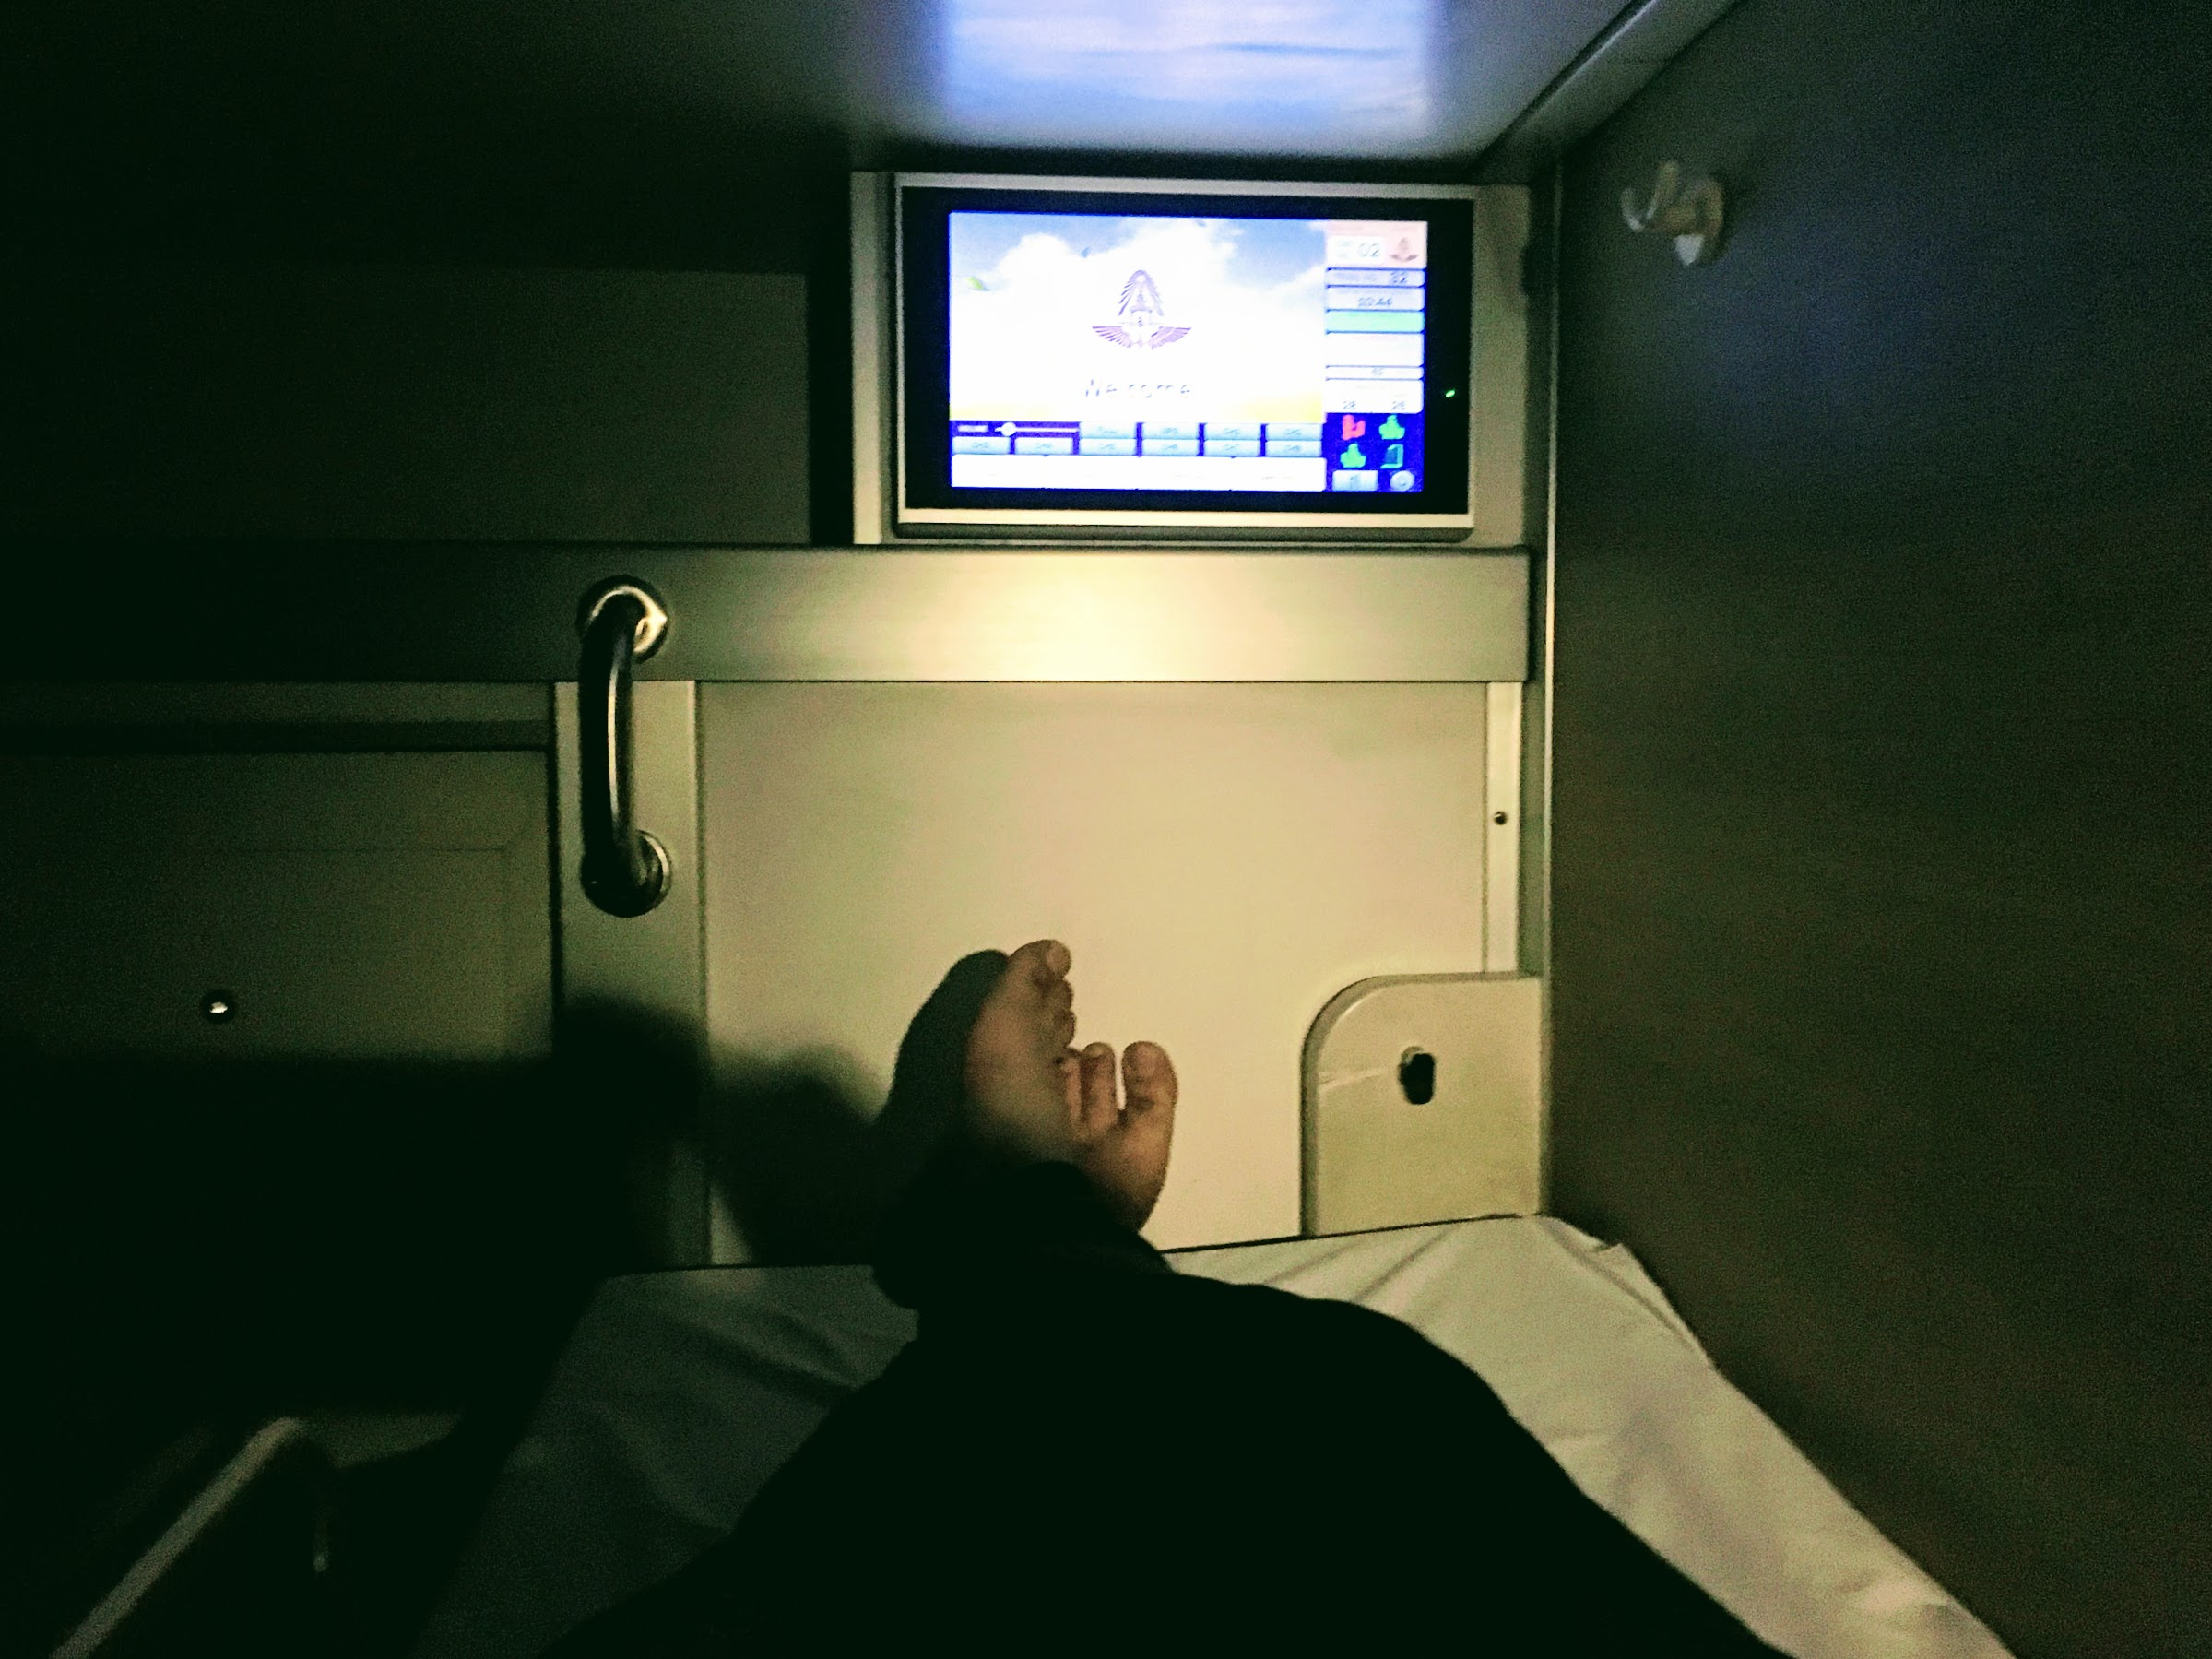 It is very comfortable to sleep inside the first class cabin.